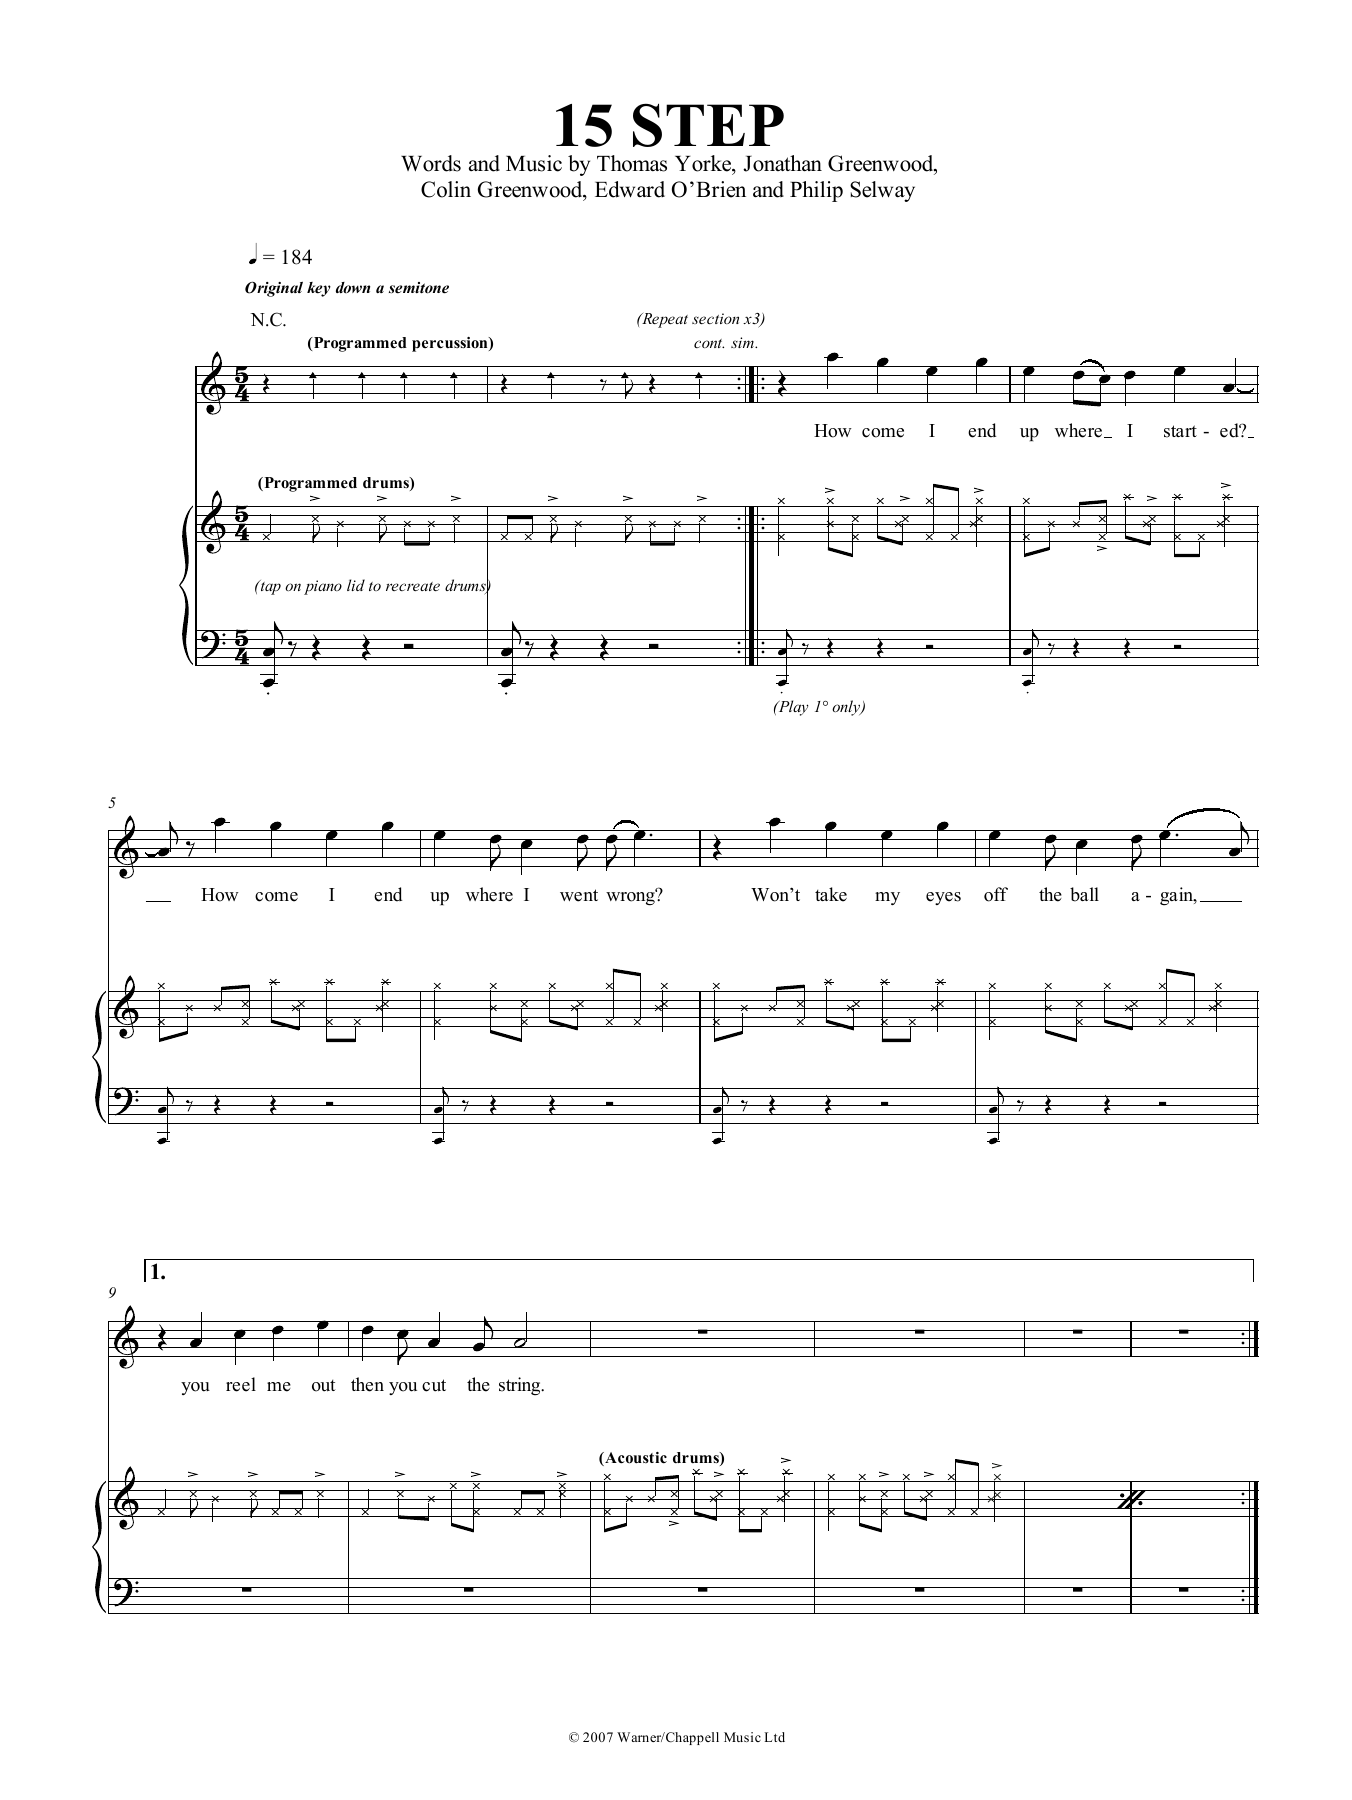 15 Step Sheet Music